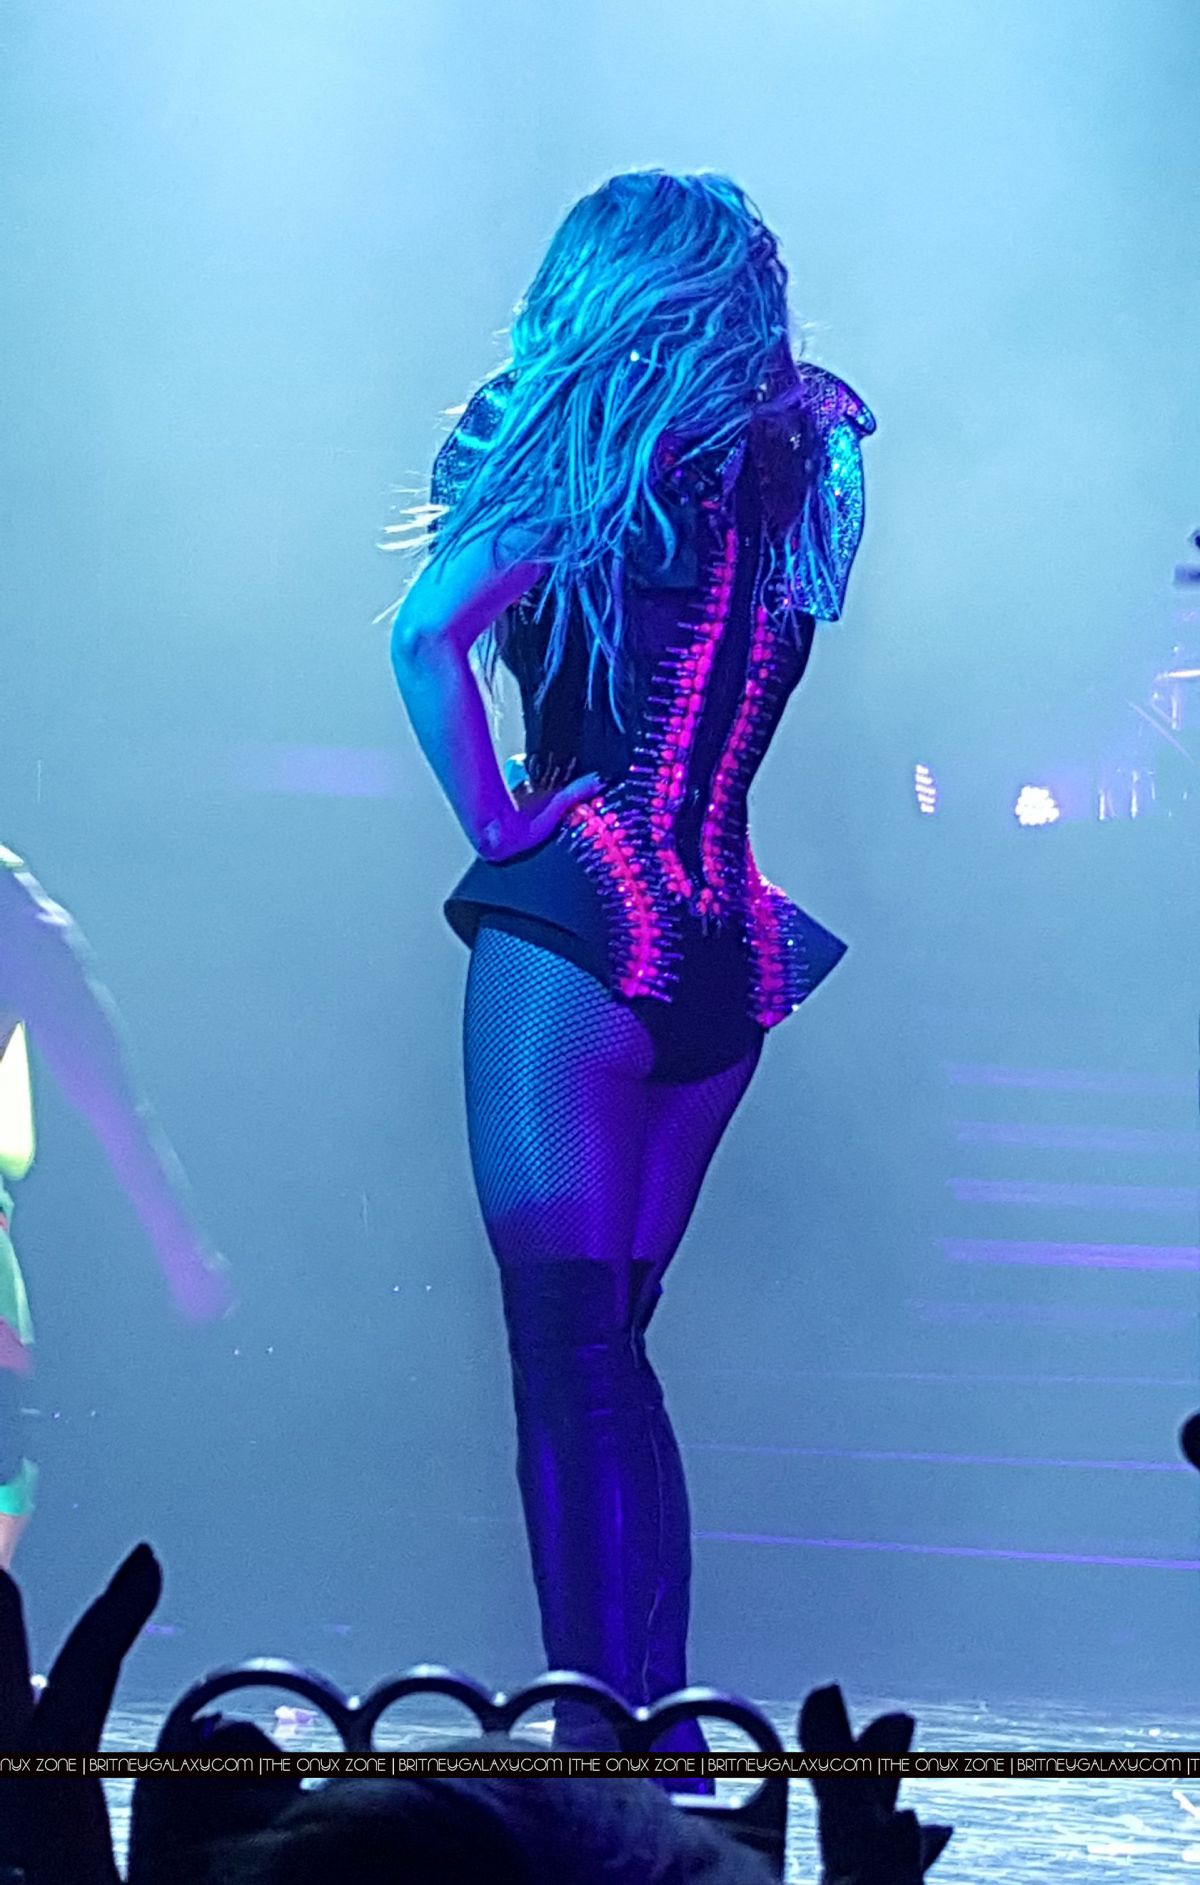 britney-spears-performs-at-piece-of-me-show-in-las-vegas-02-13-2016_7.jpg